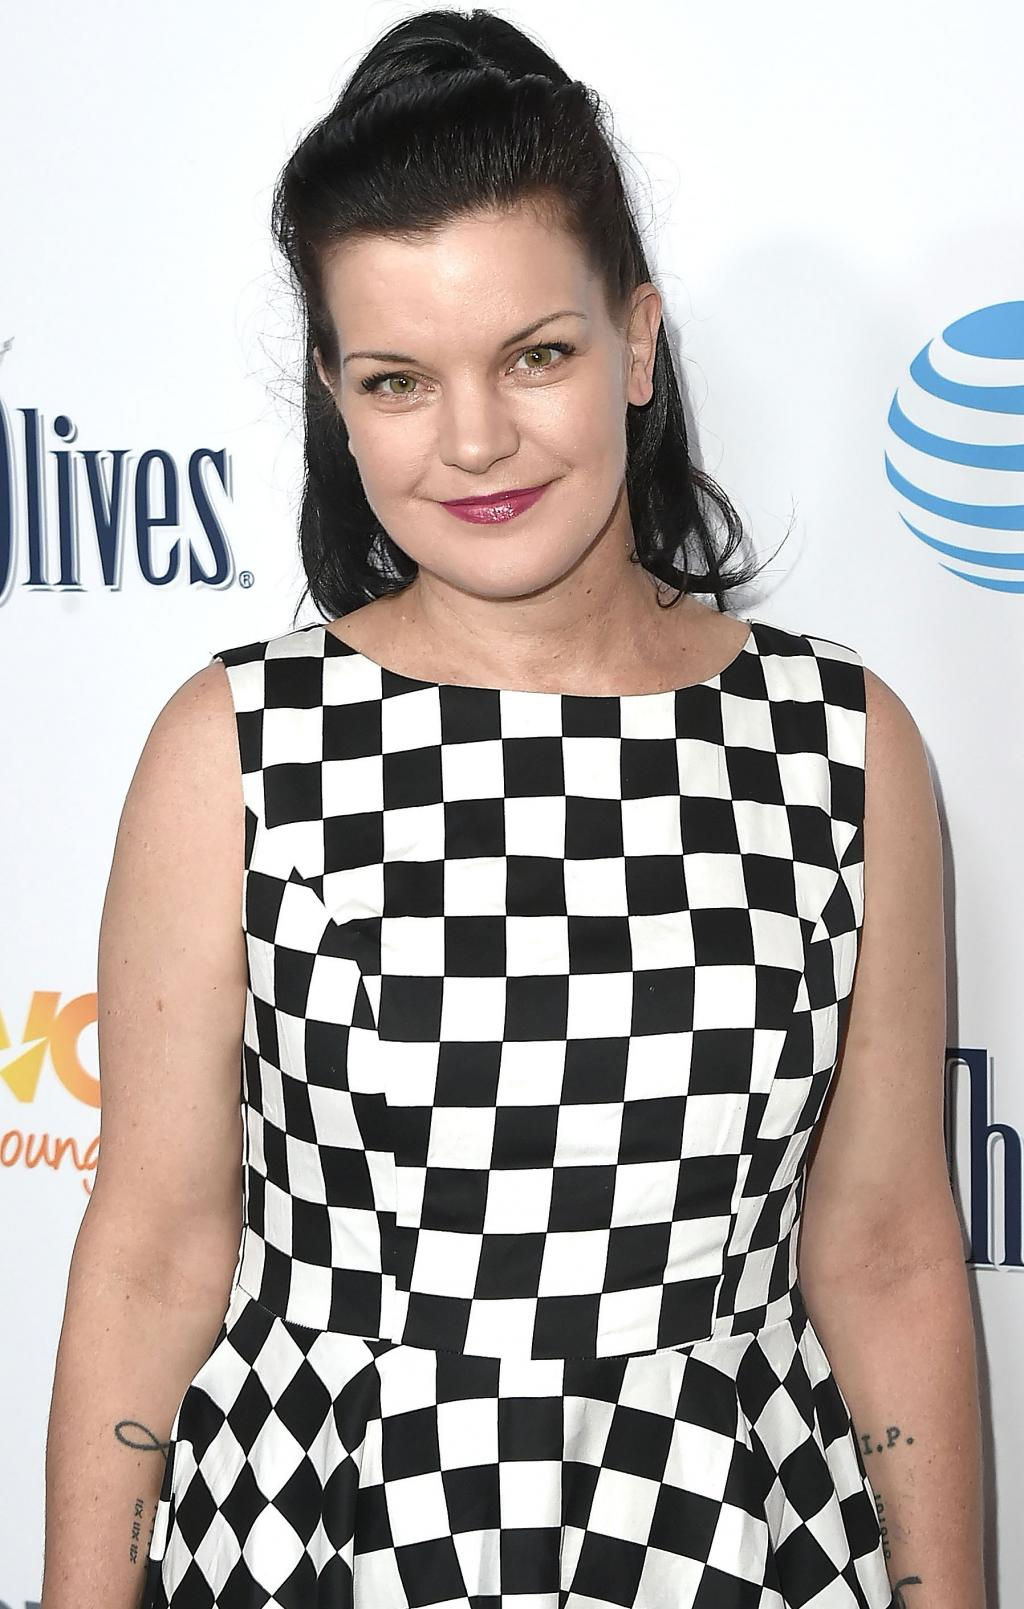 Pauley Perrette Opens Up About Her Recovery 1 Year After 'Extremely Traumatic' Attack by Homeless Man